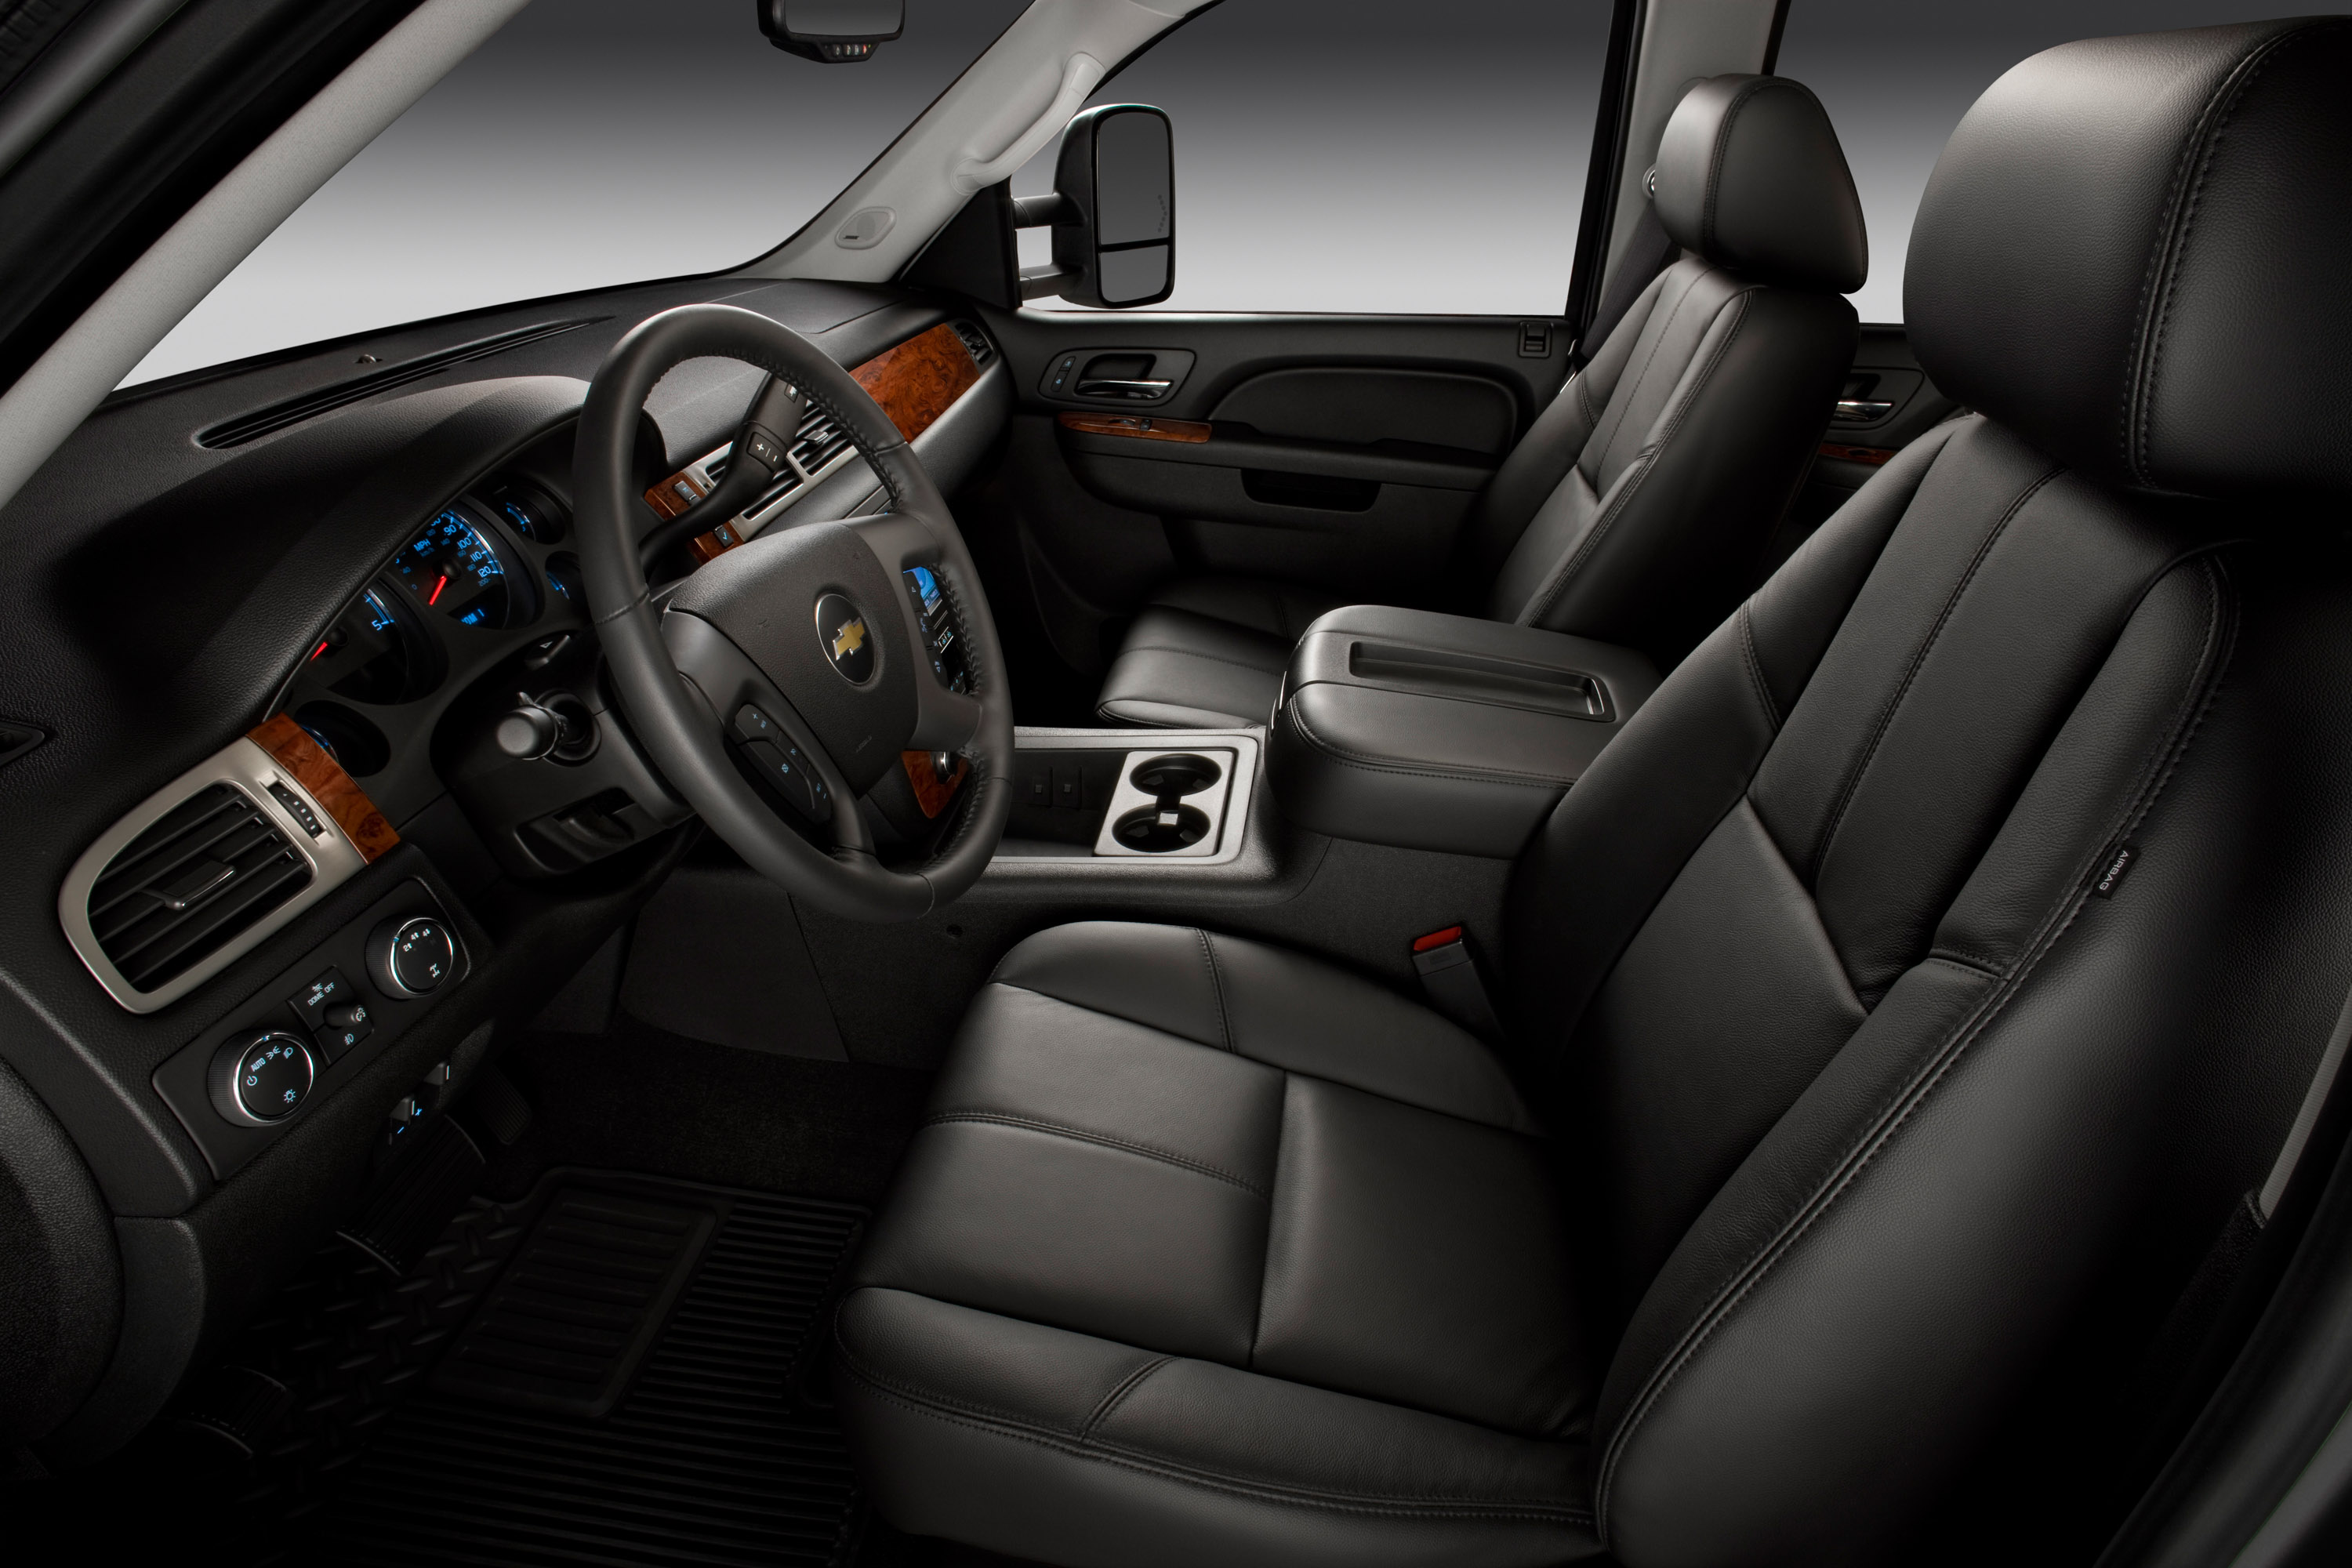 2011 Chevrolet Silverado 2500 HD LTZ - Picture 32730